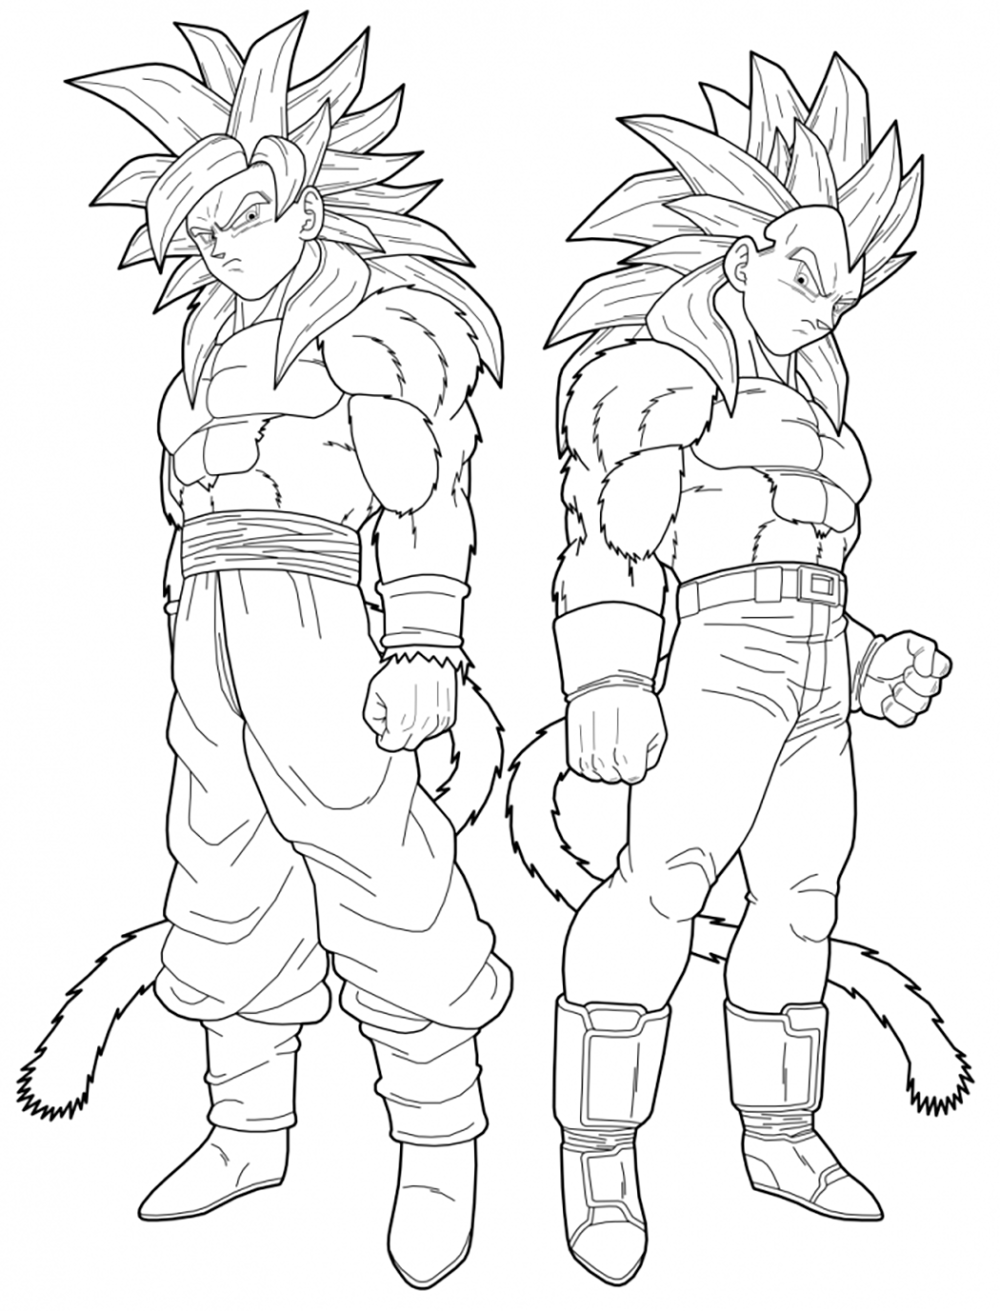 Facile Dragon Ball Gt Goku Et Vegeta Coloriage Dragon Ball Z